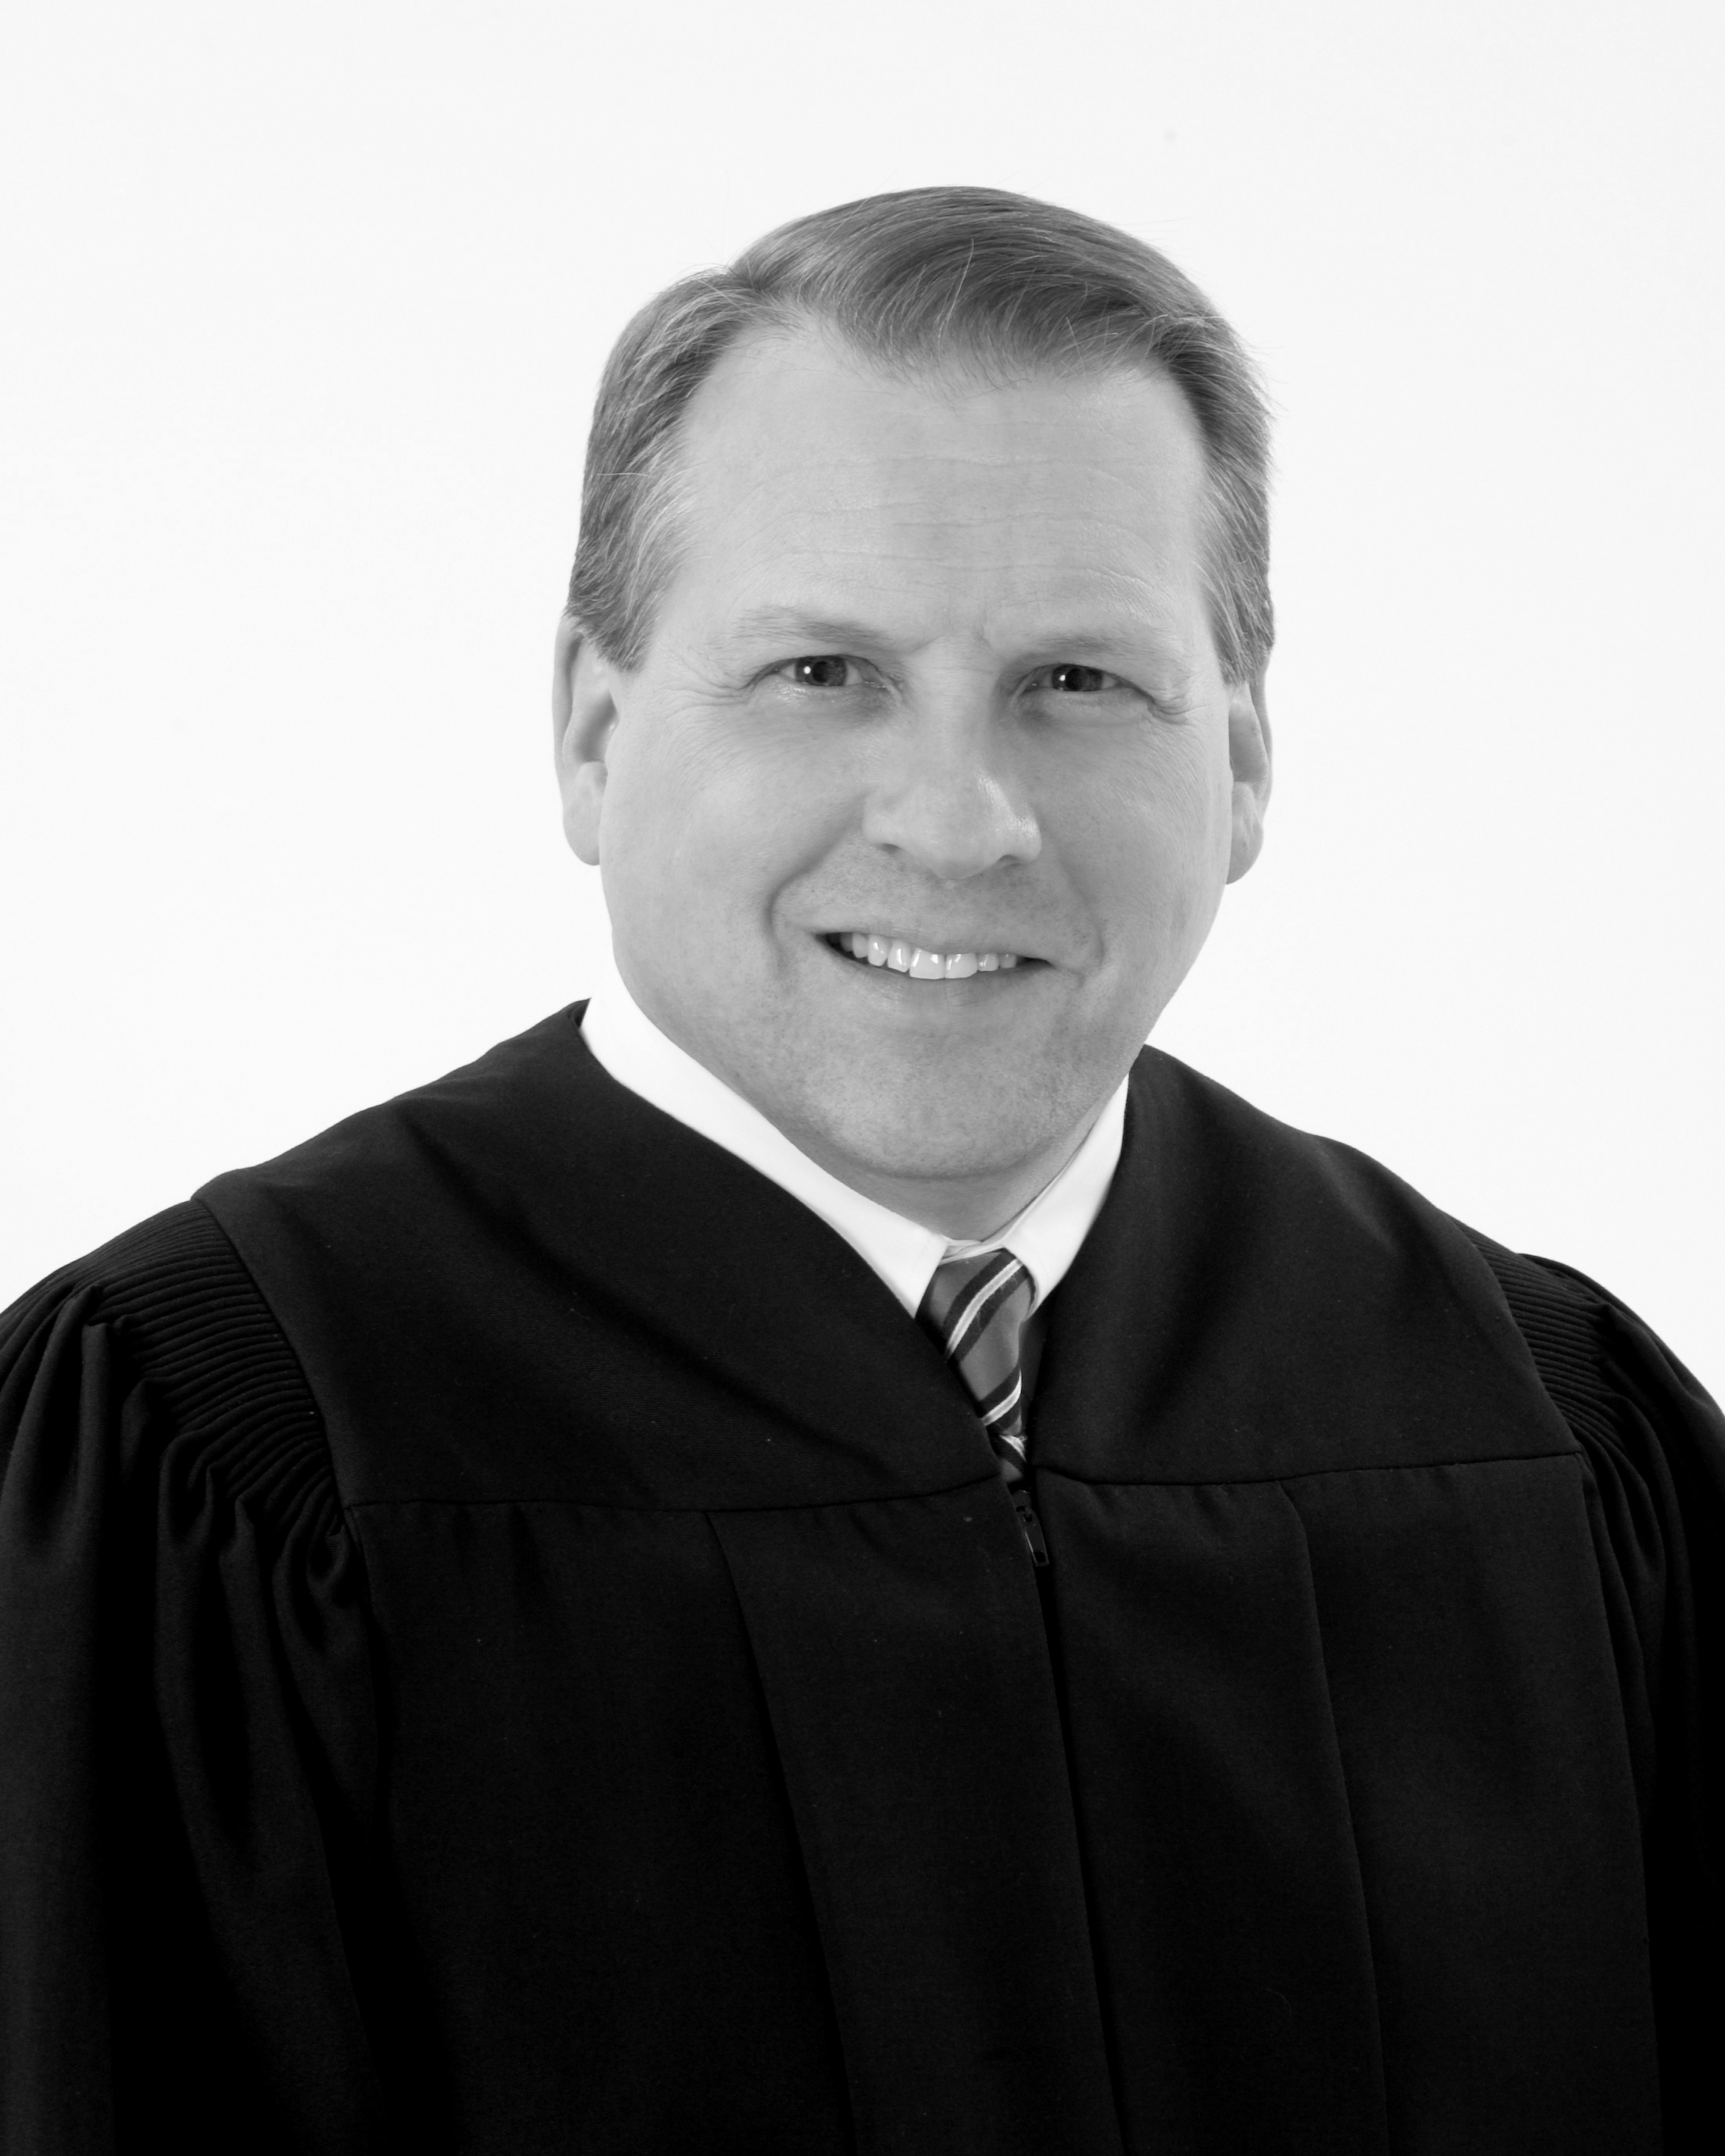 November 2018 Endorsements - Protecting our courts and